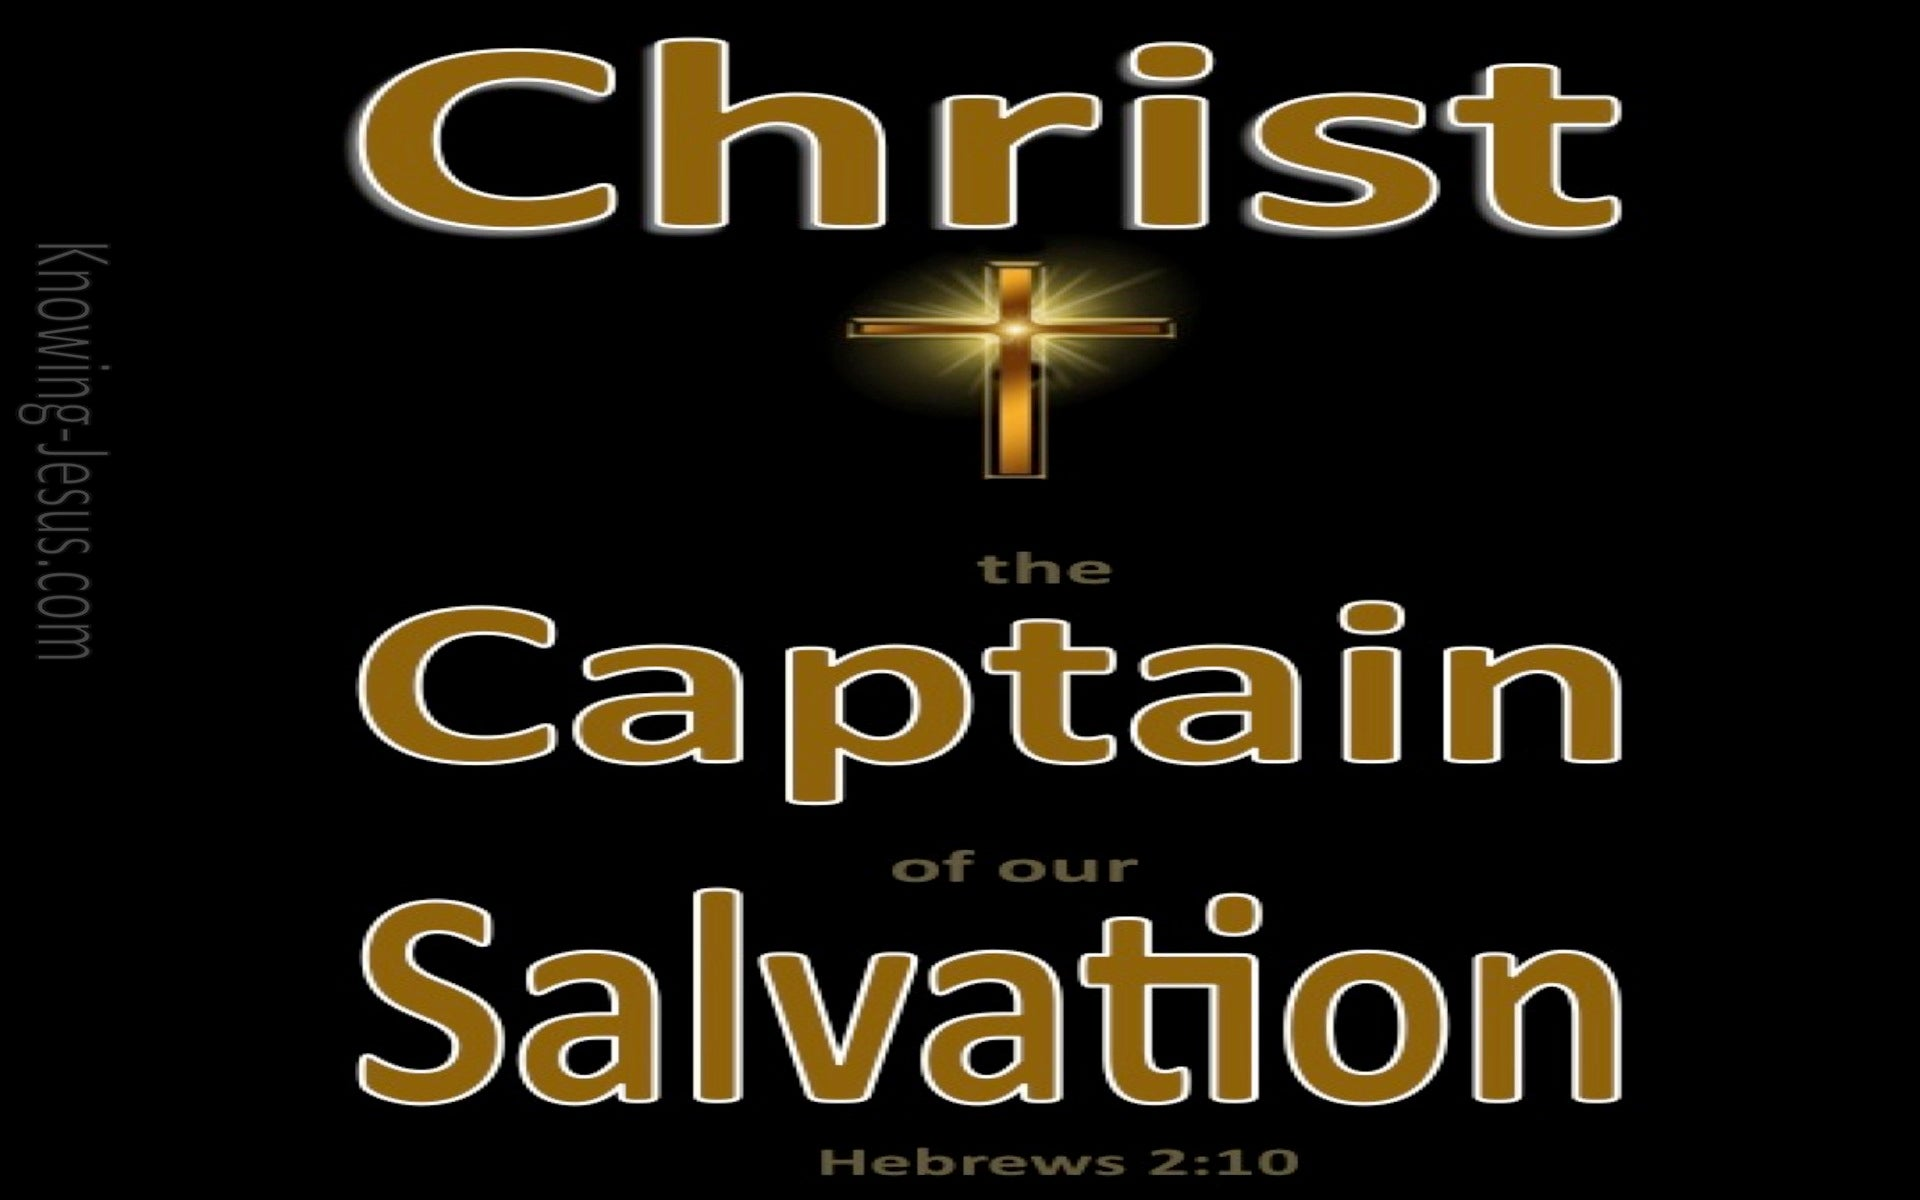 Hebrews 2:10 Captain of Our Salvation (black)